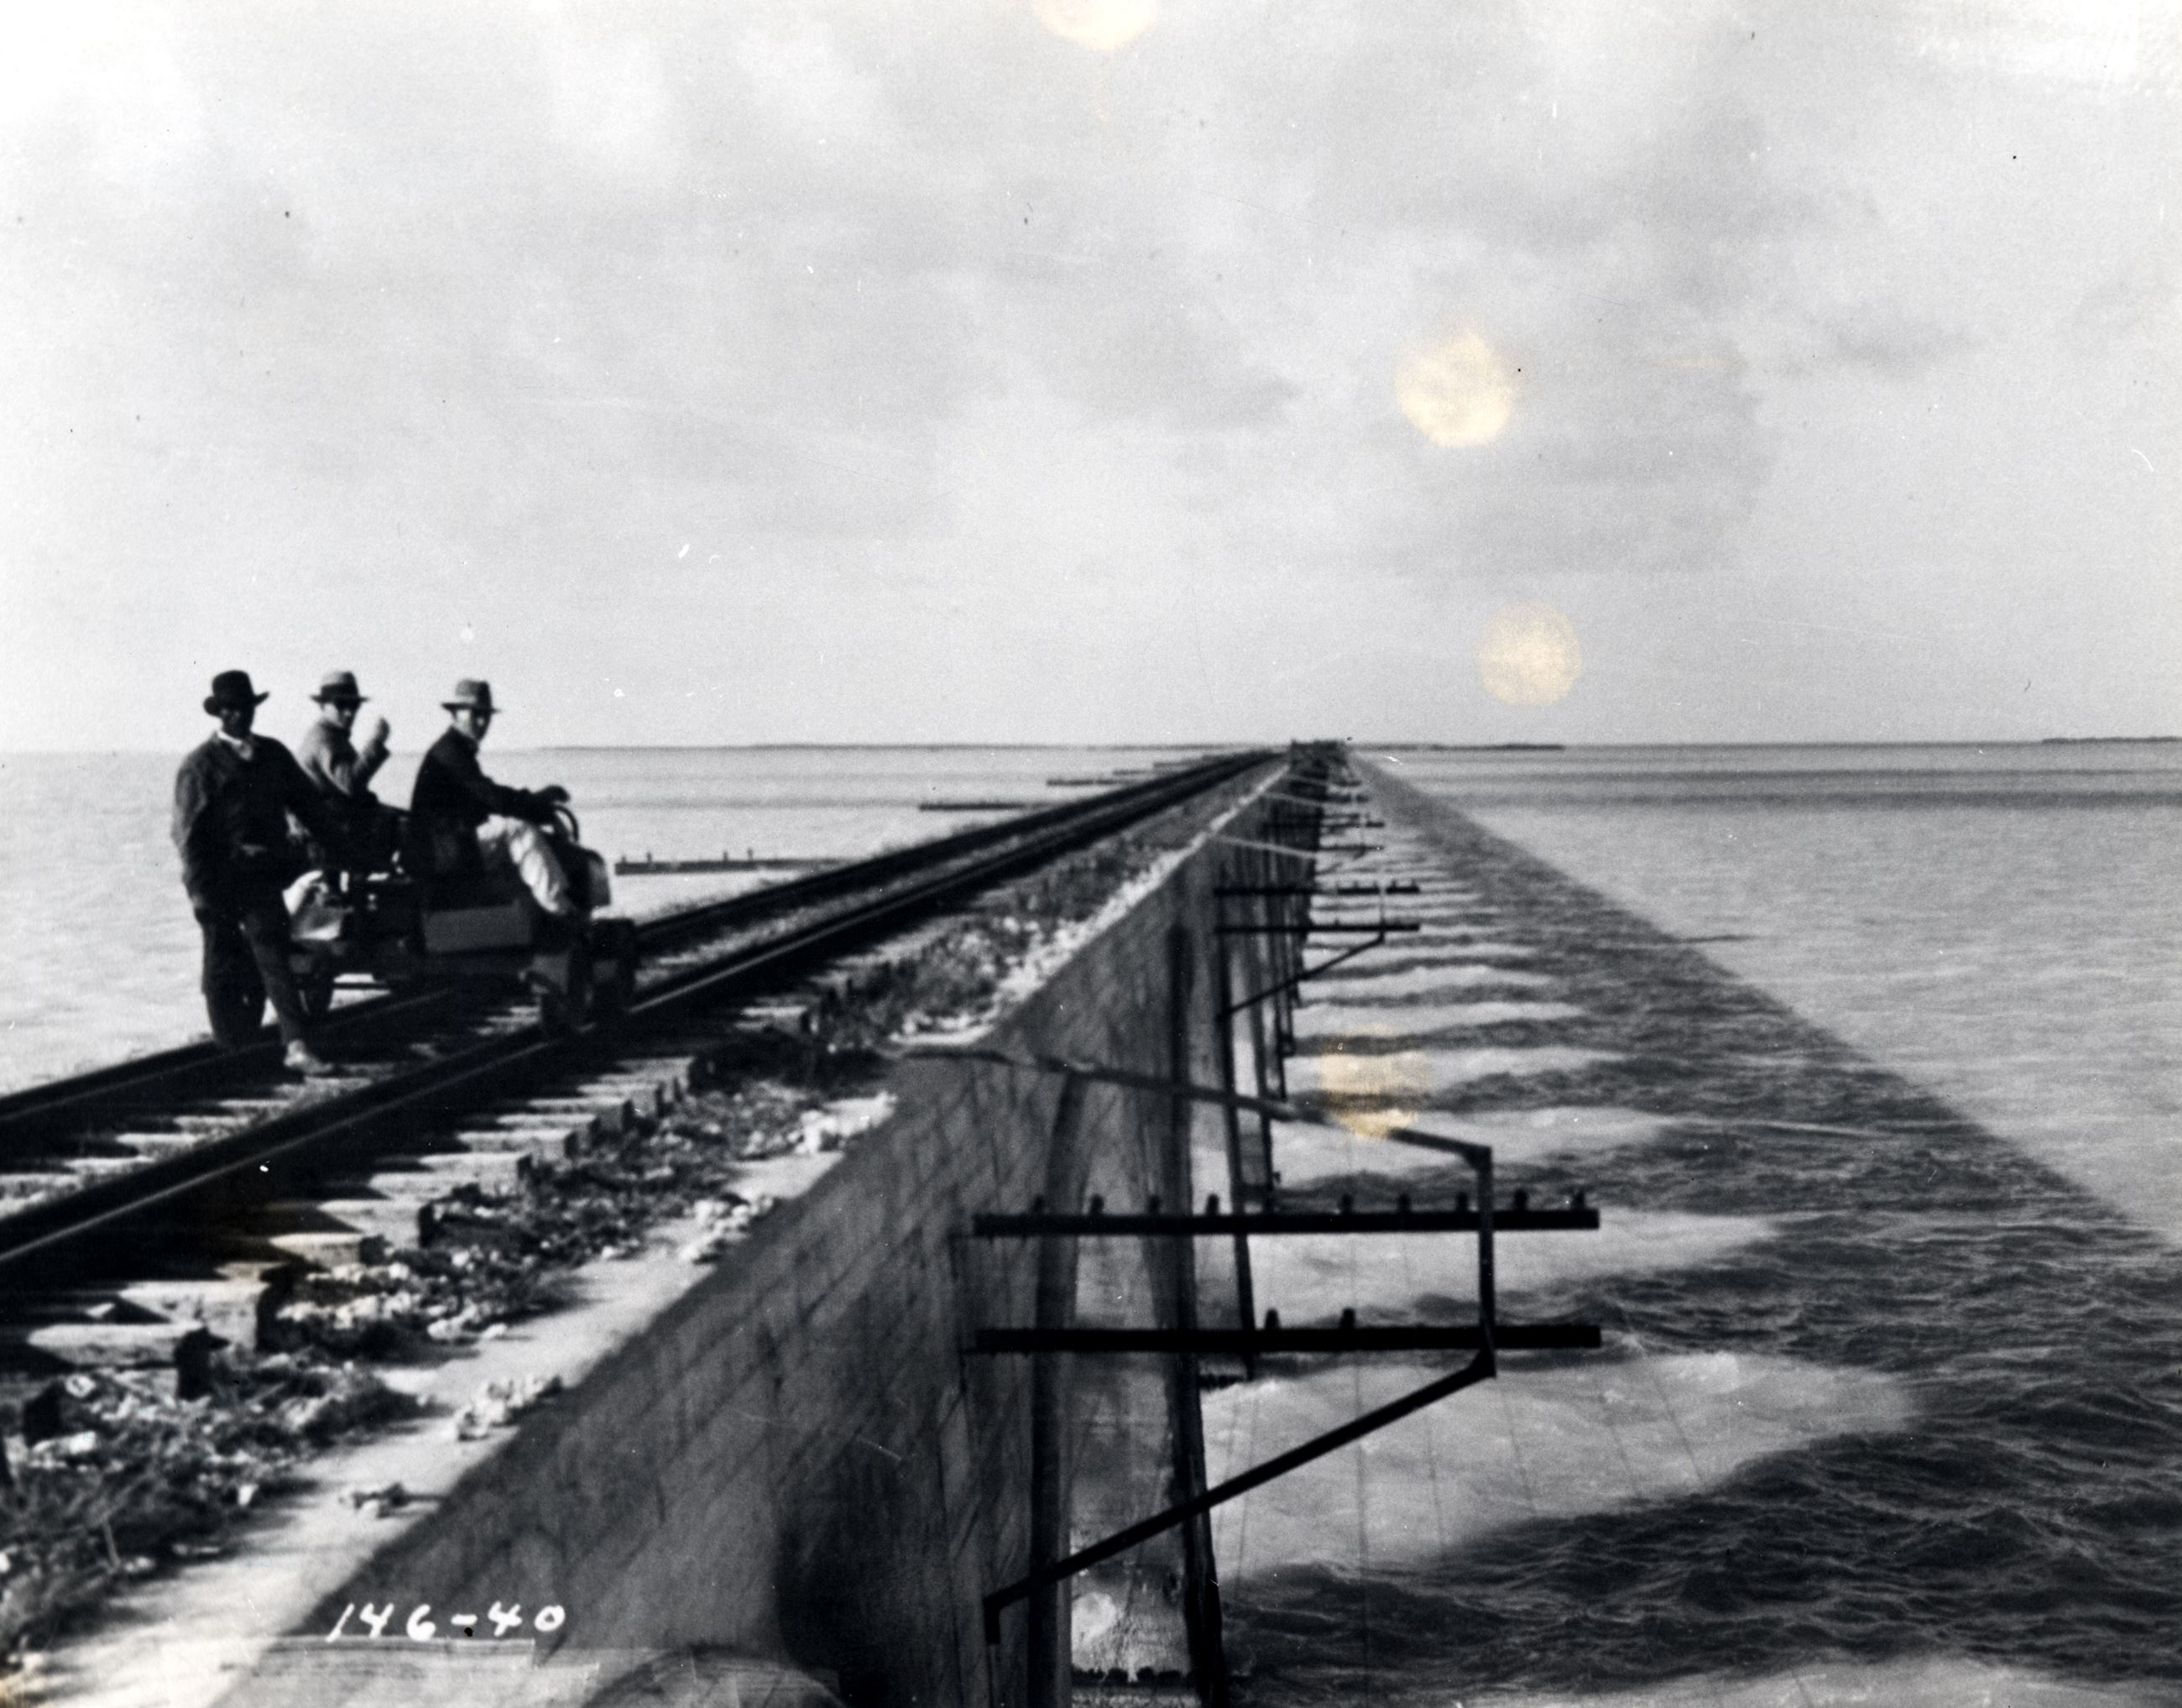 4-5 Railroad motor car on Long Key Viaduct in 1926